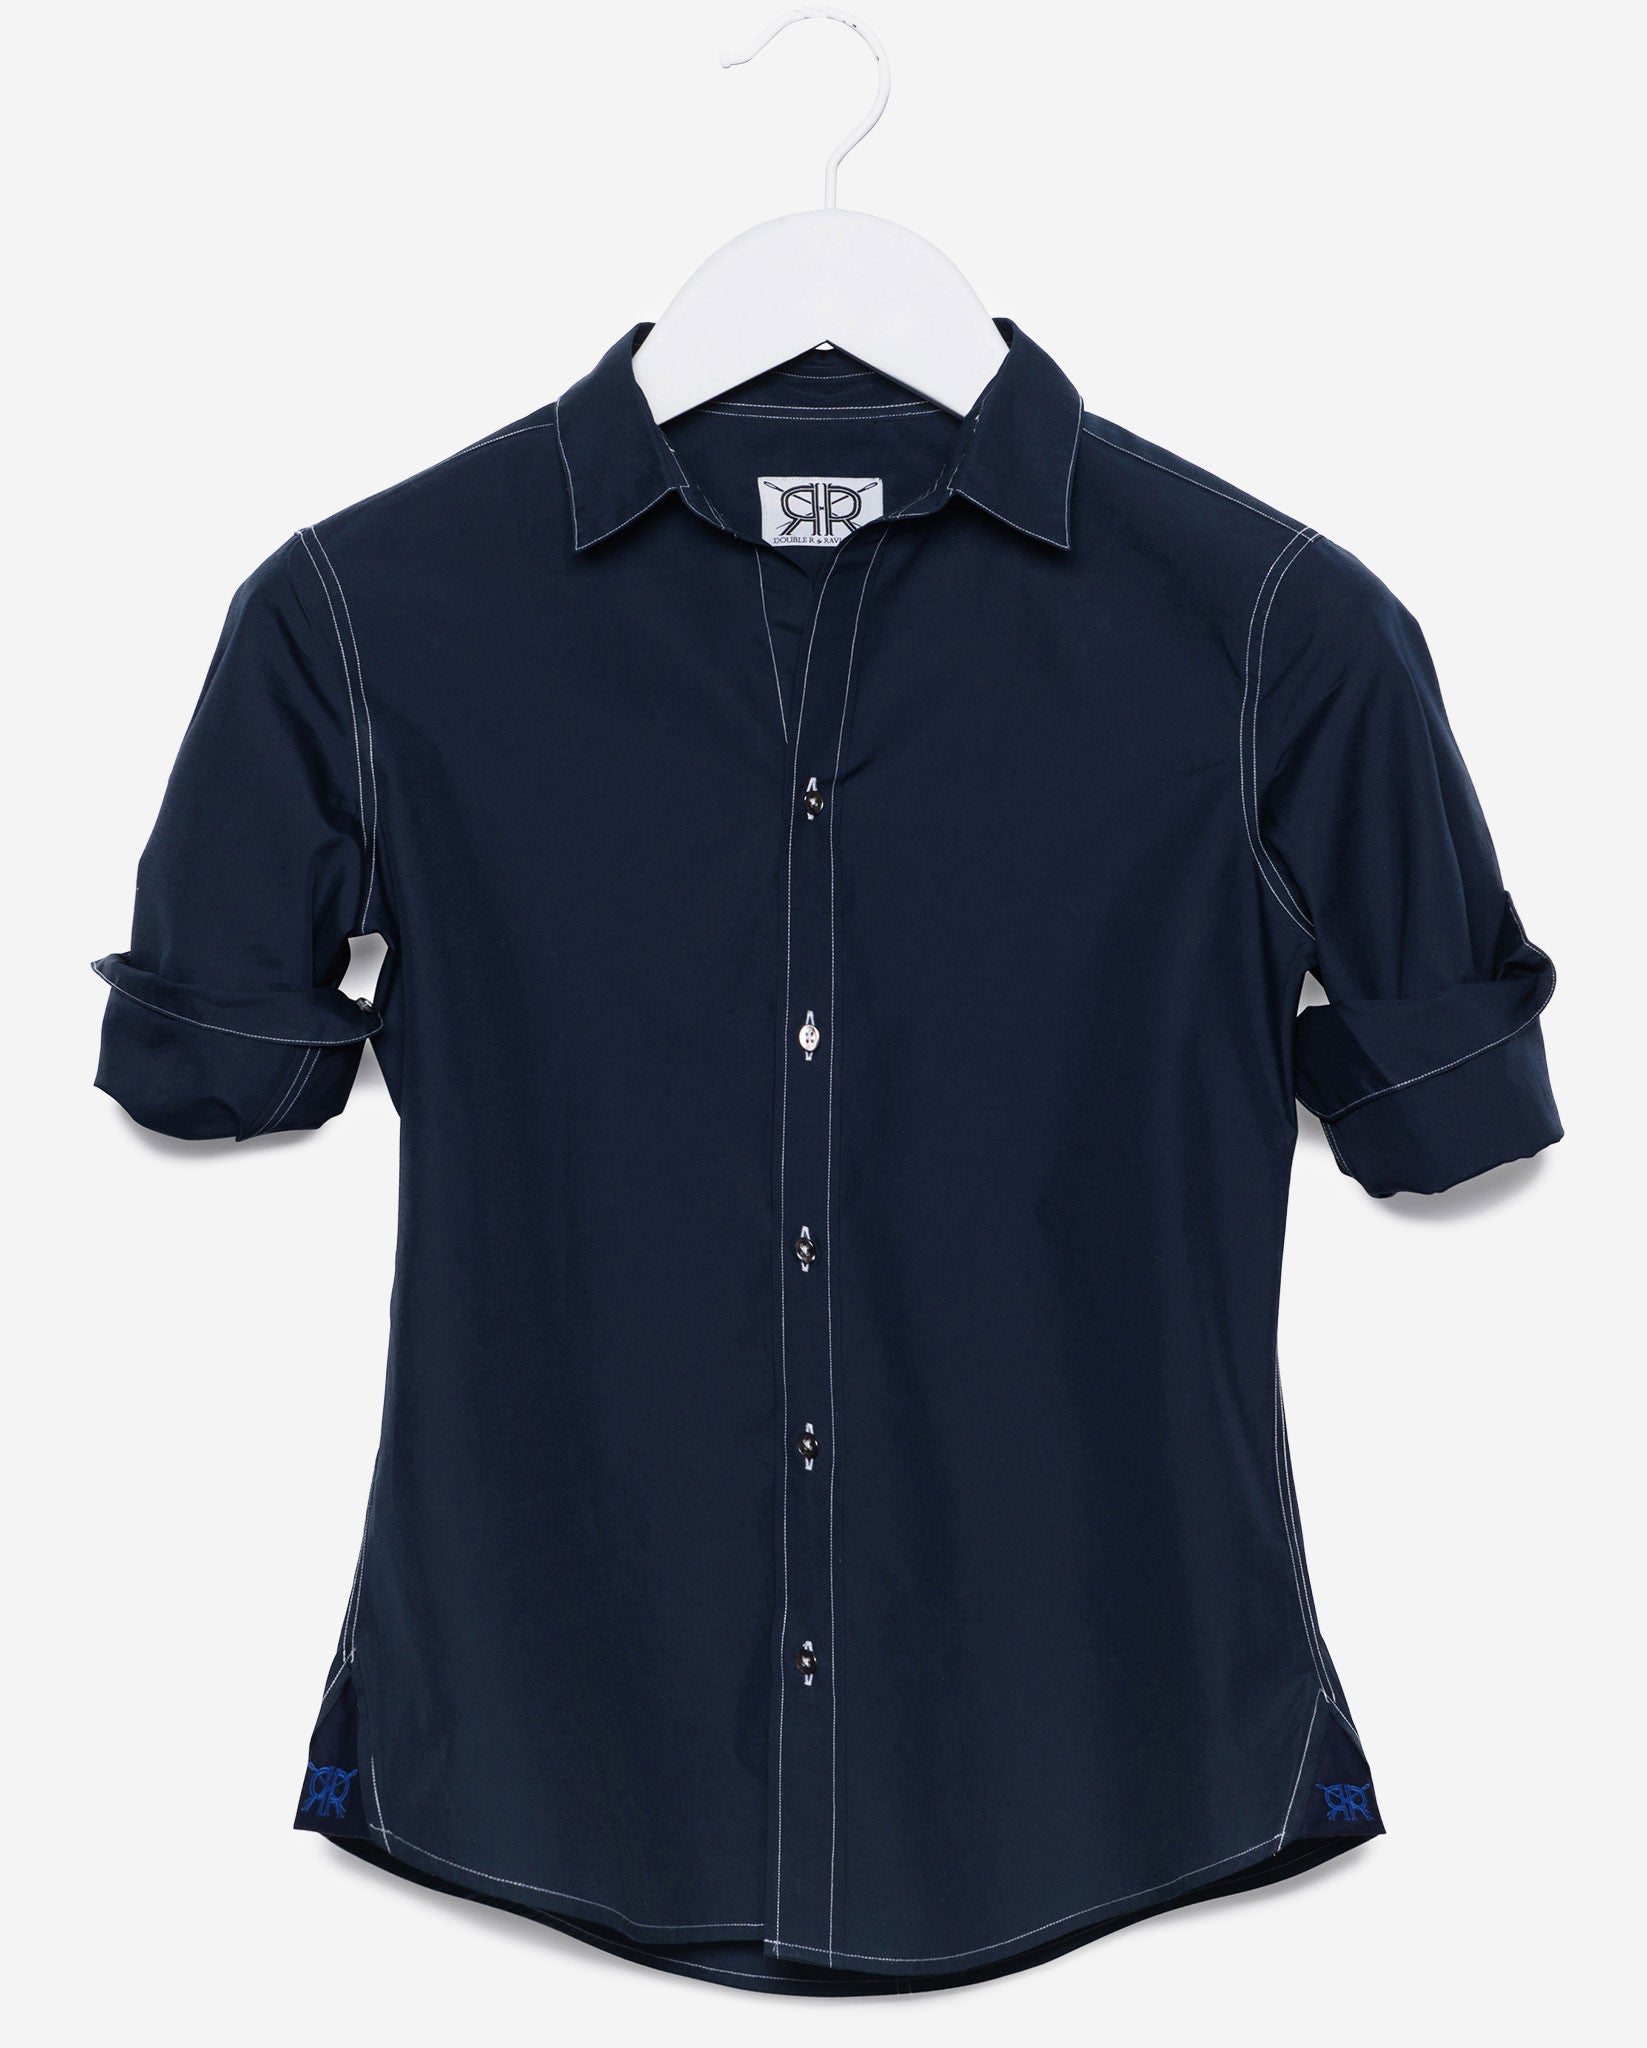 effb7826e4920 Tailored Shirt - Navy with White Stitch Women's Button Down by ...